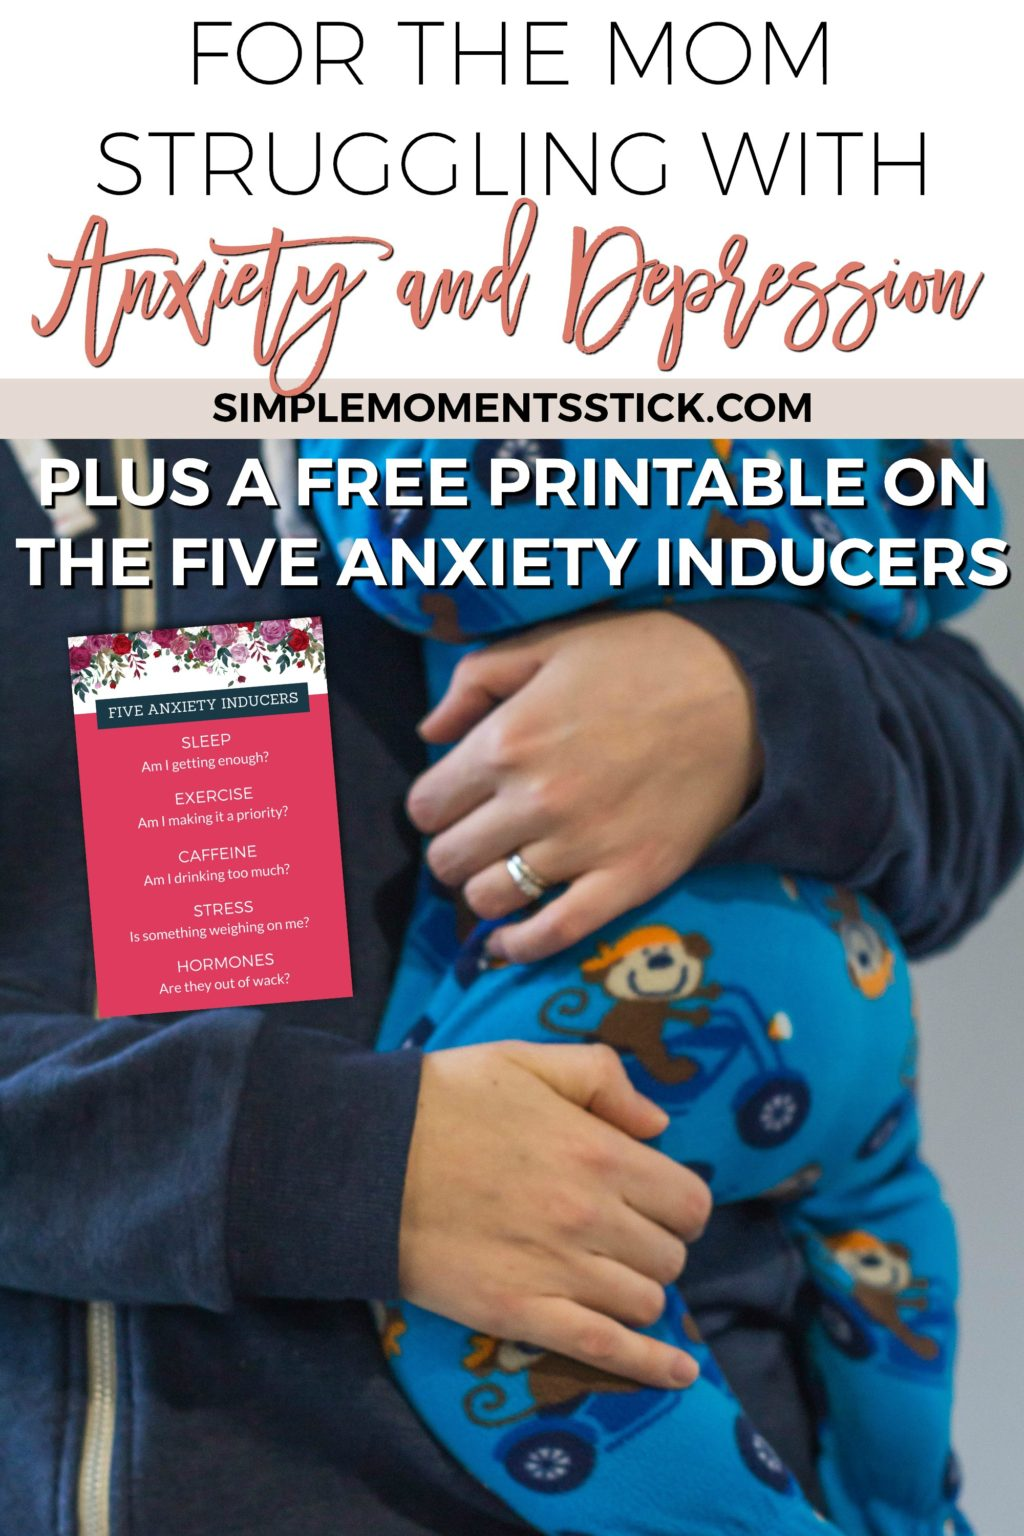 Three important tips for all who are struggling with mom anxiety and depression.